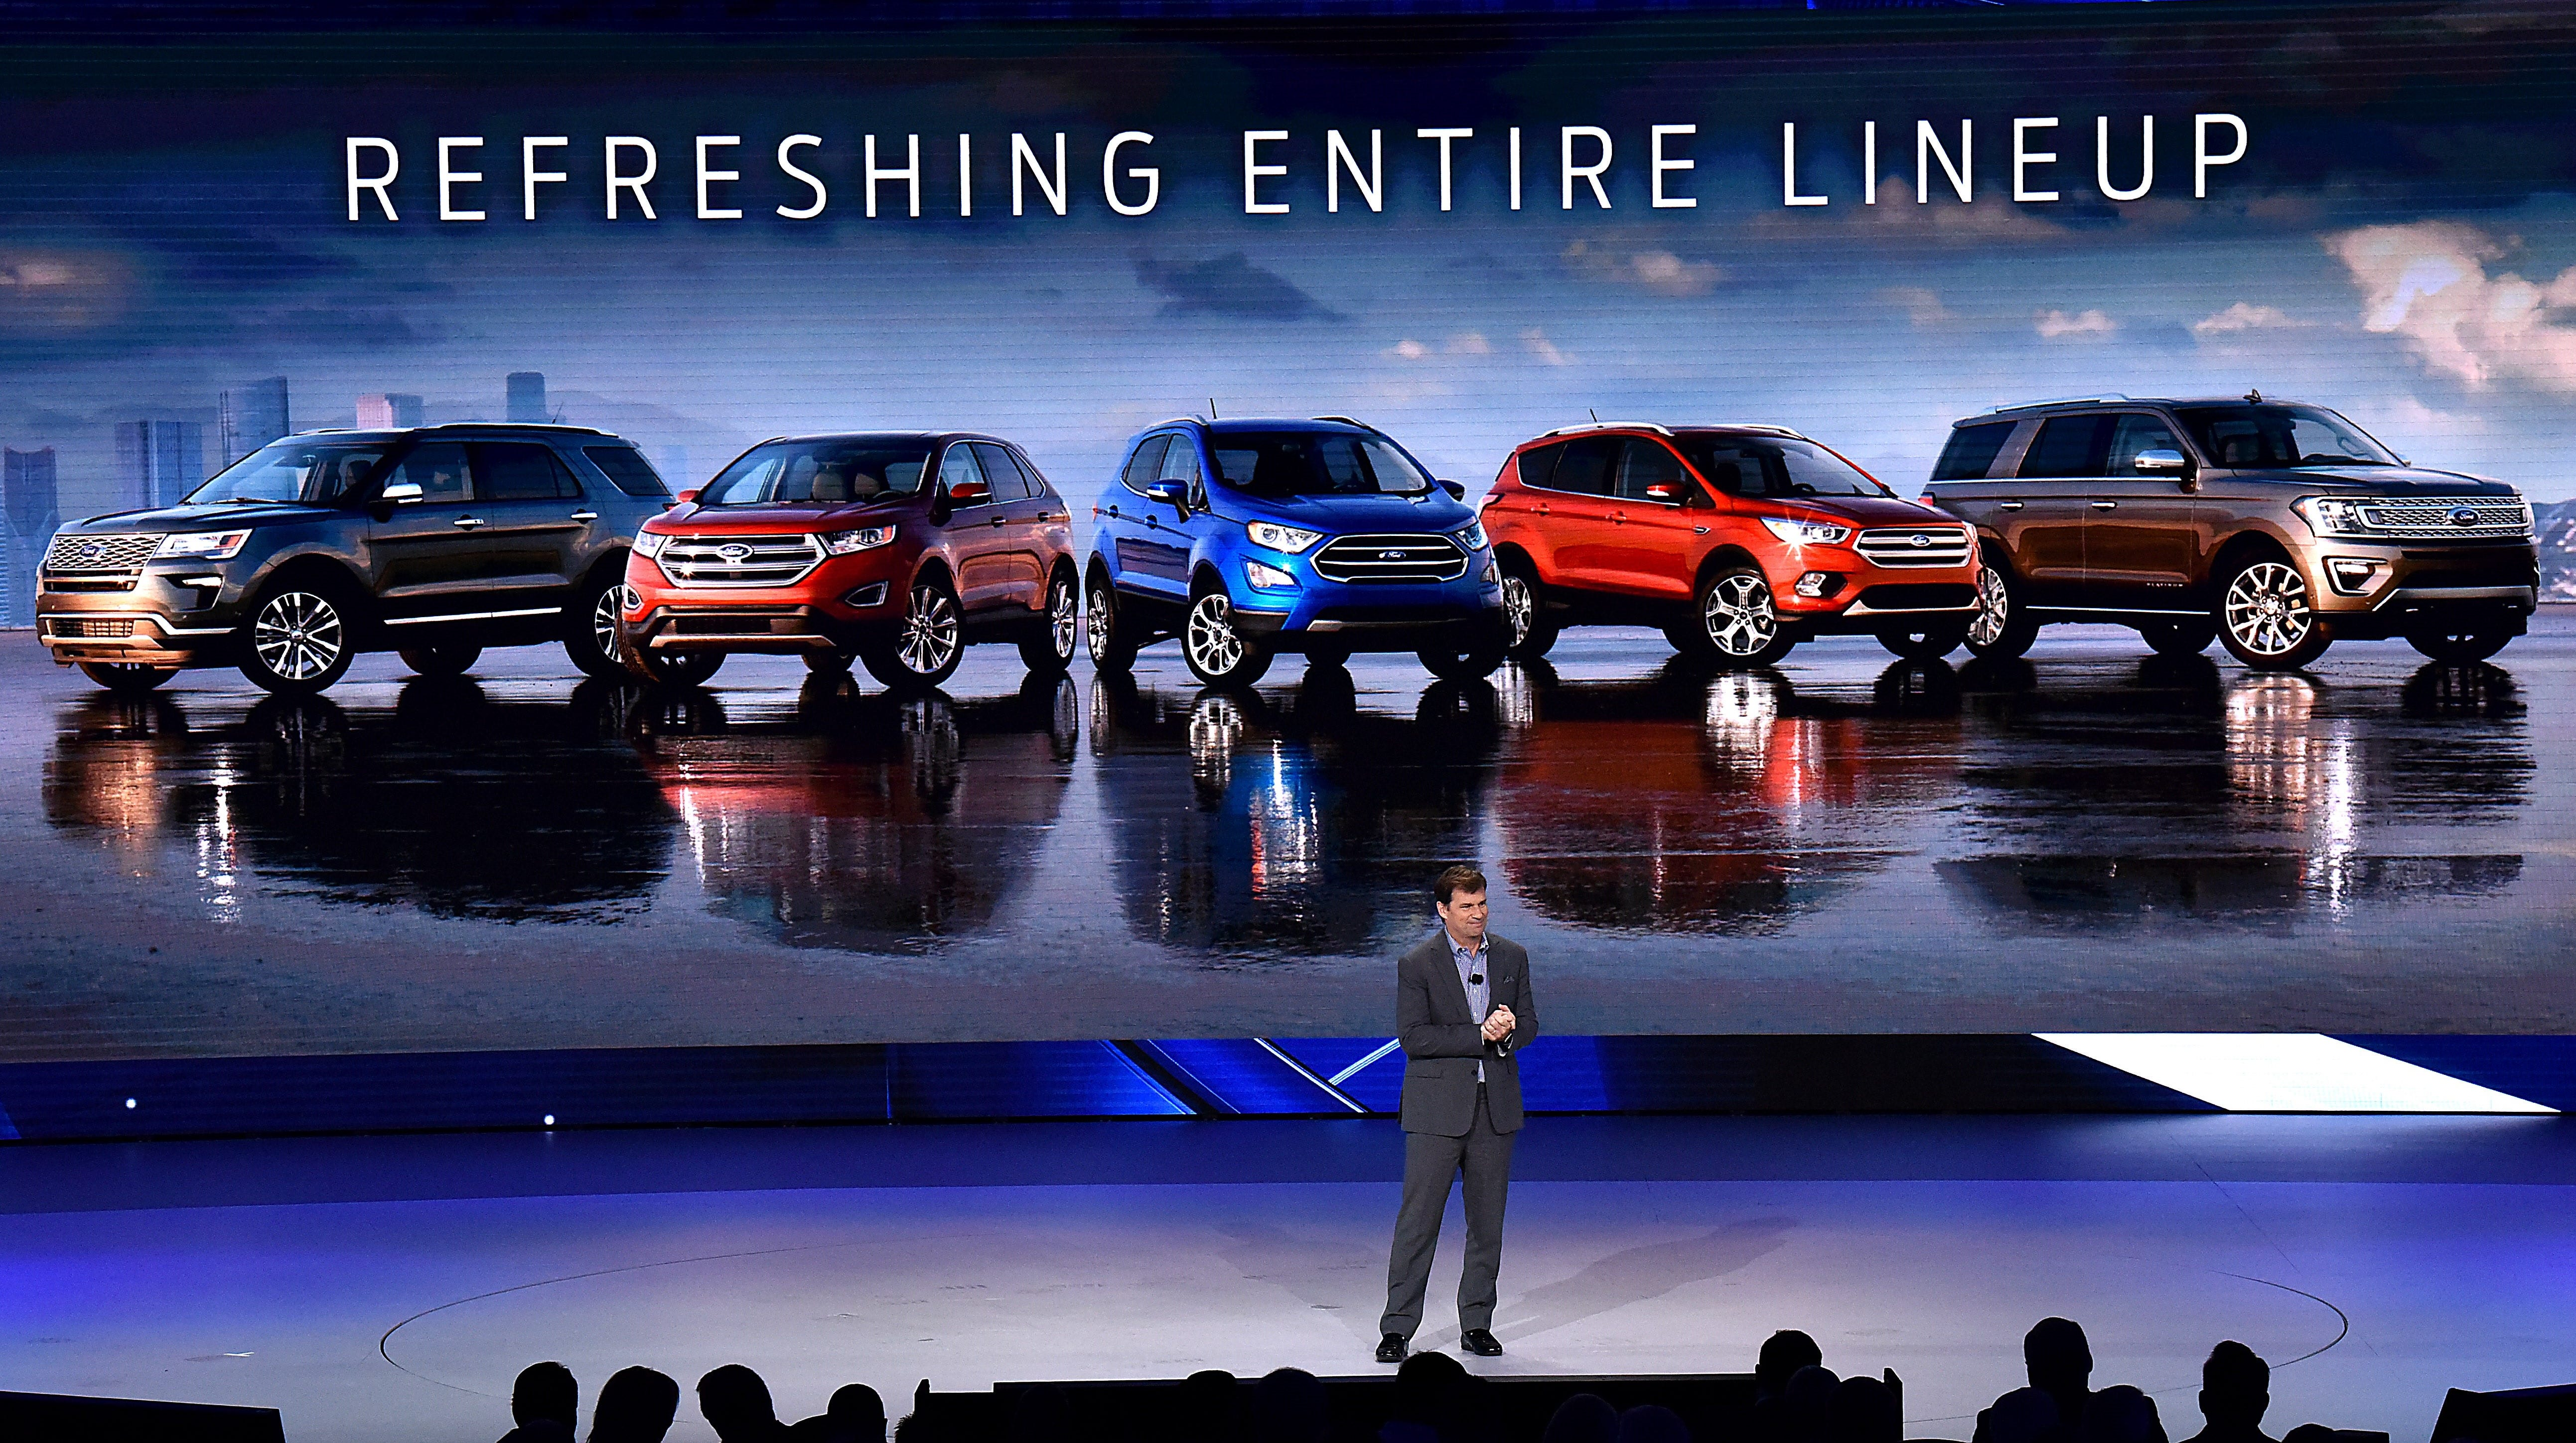 Ford hopes for nike like success with built ford proud ads